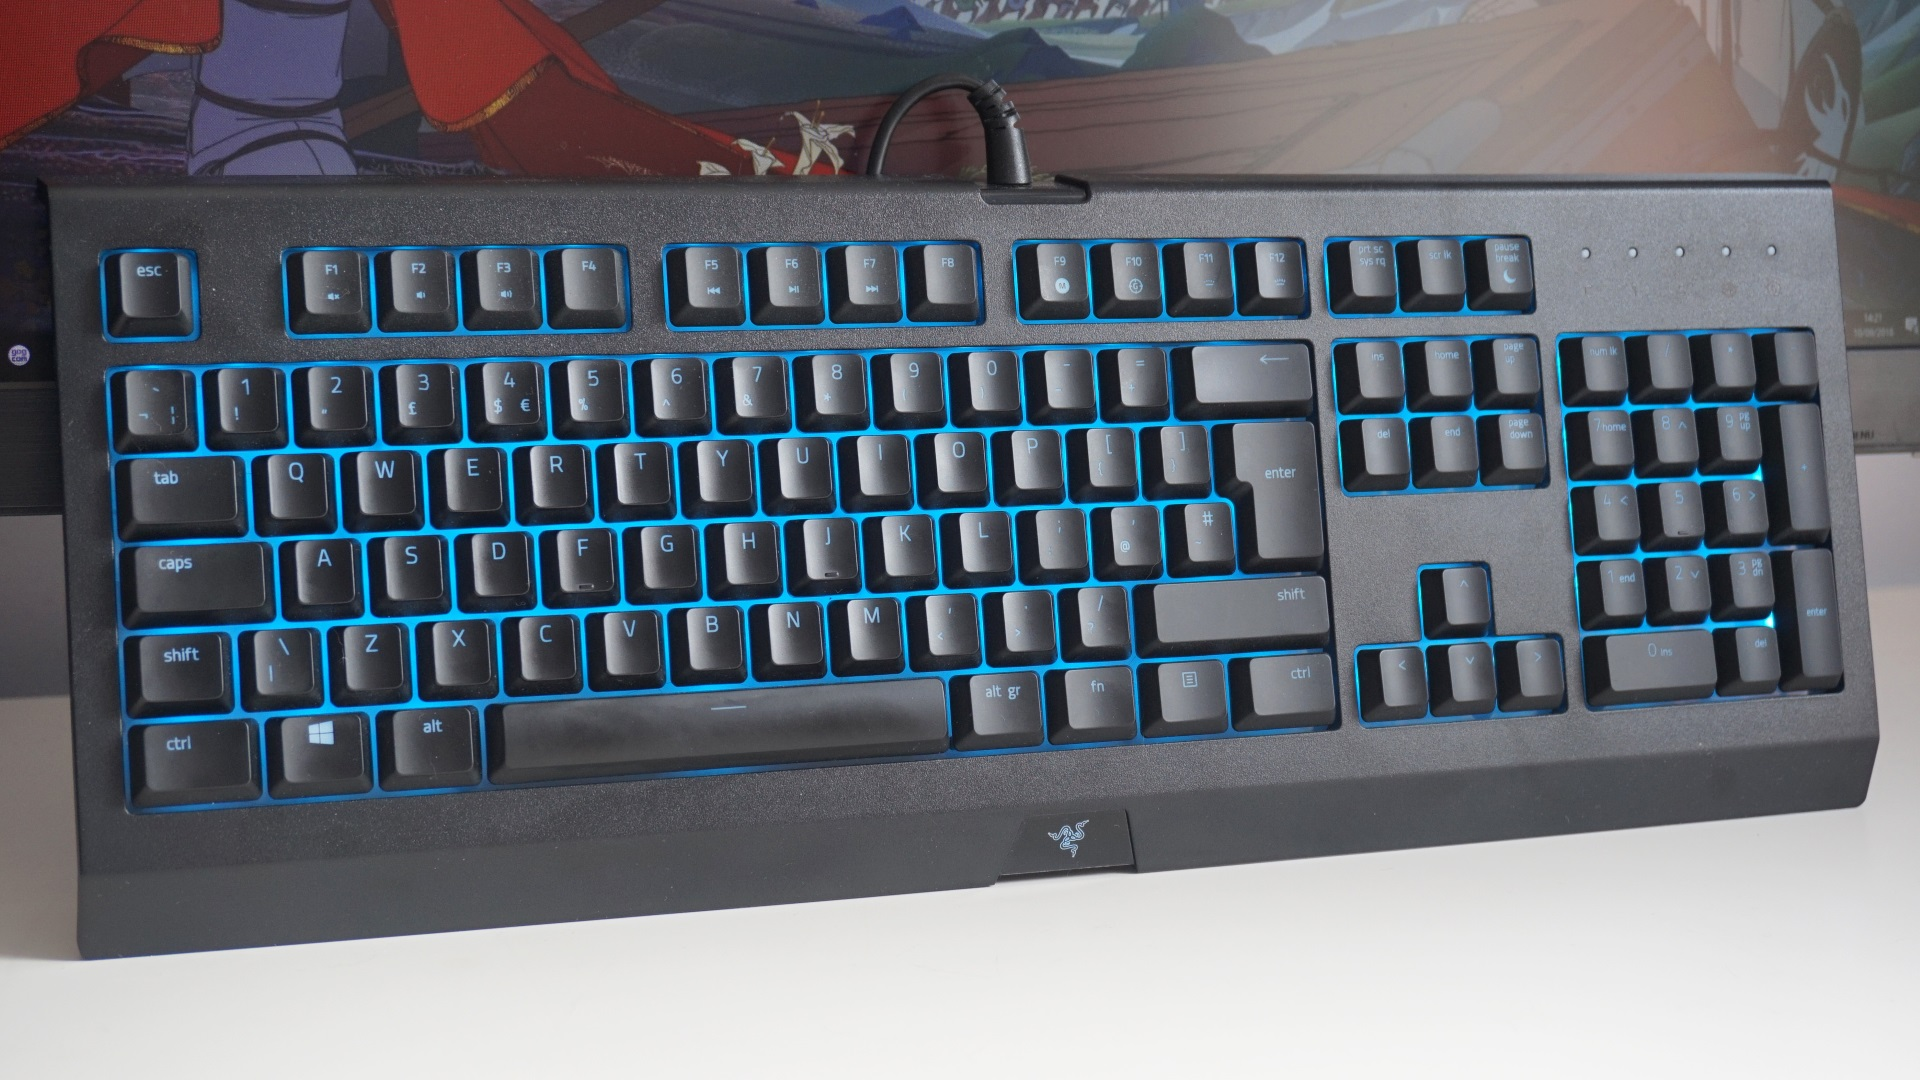 Best gaming keyboard 2019: Top mechanical and membrane keyboards